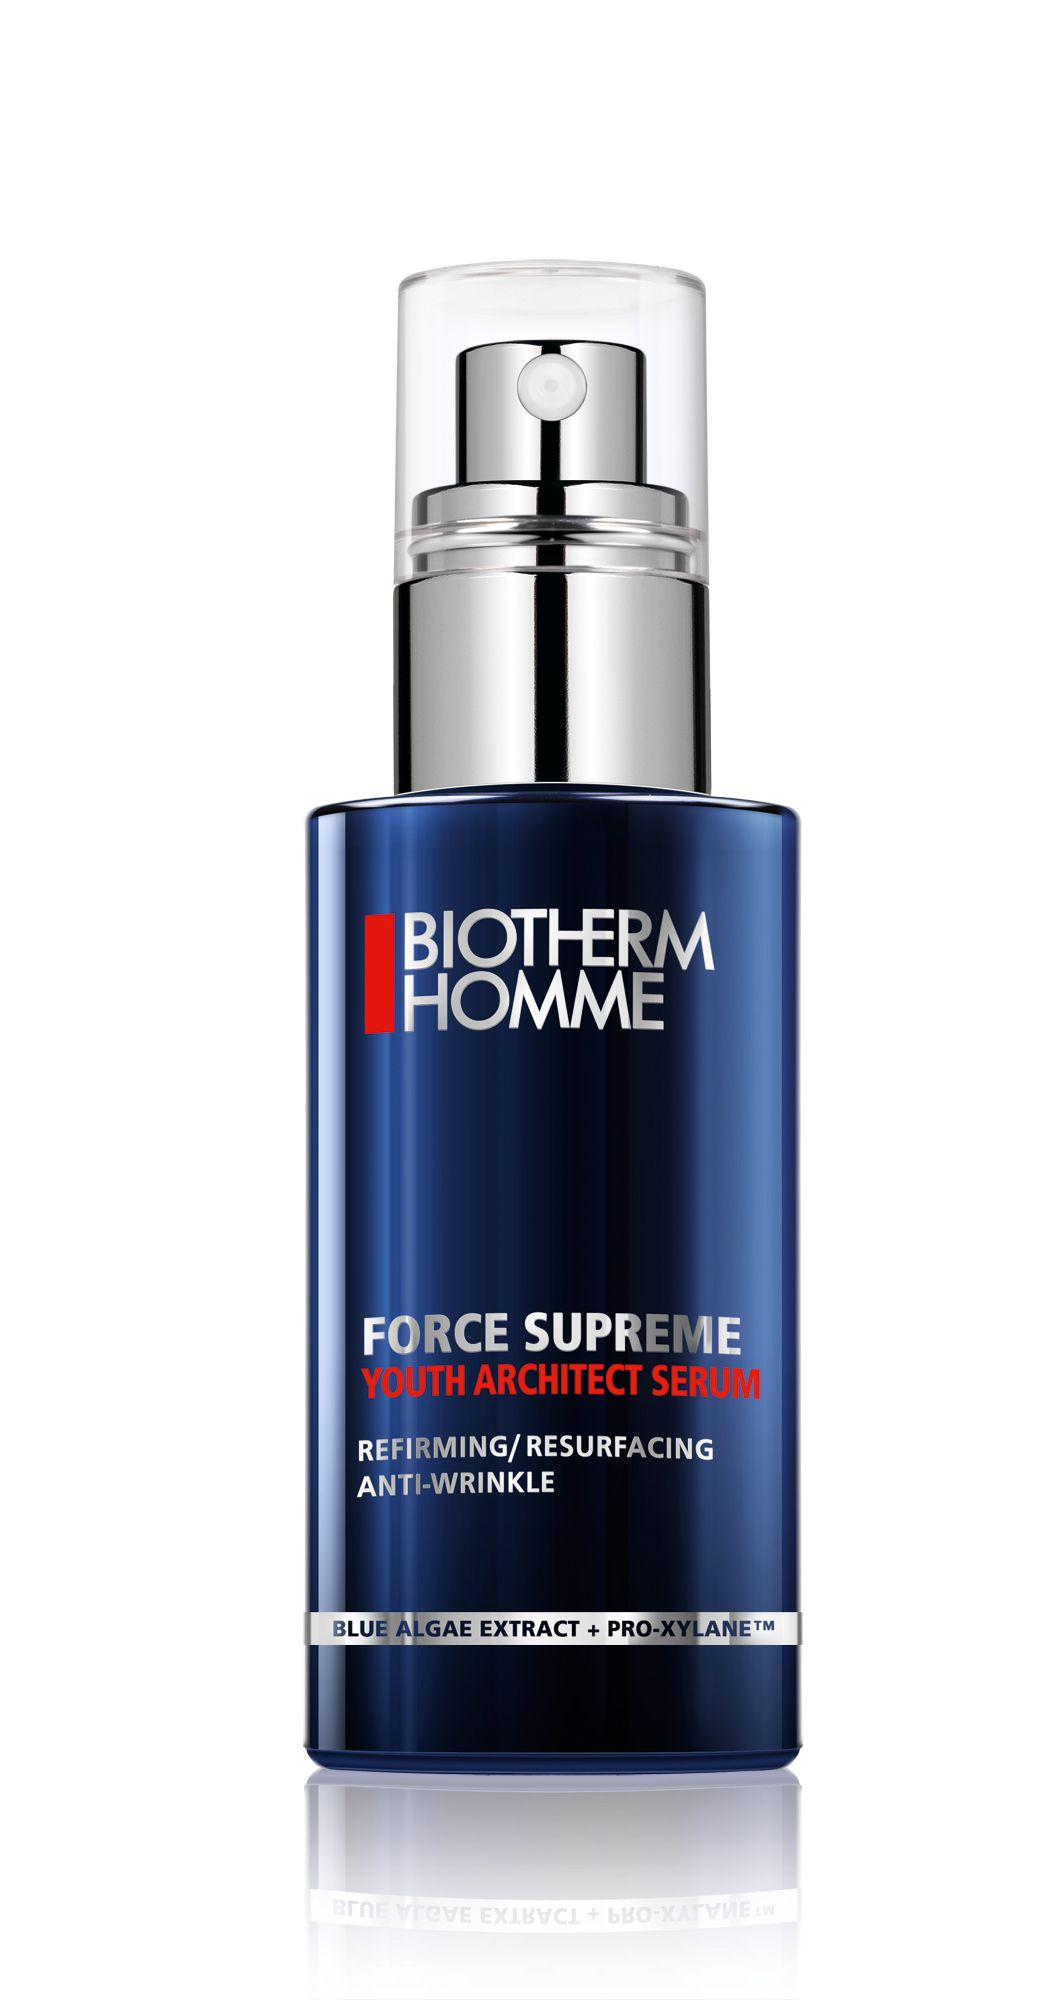 Force Supreme Youth Architect Serum